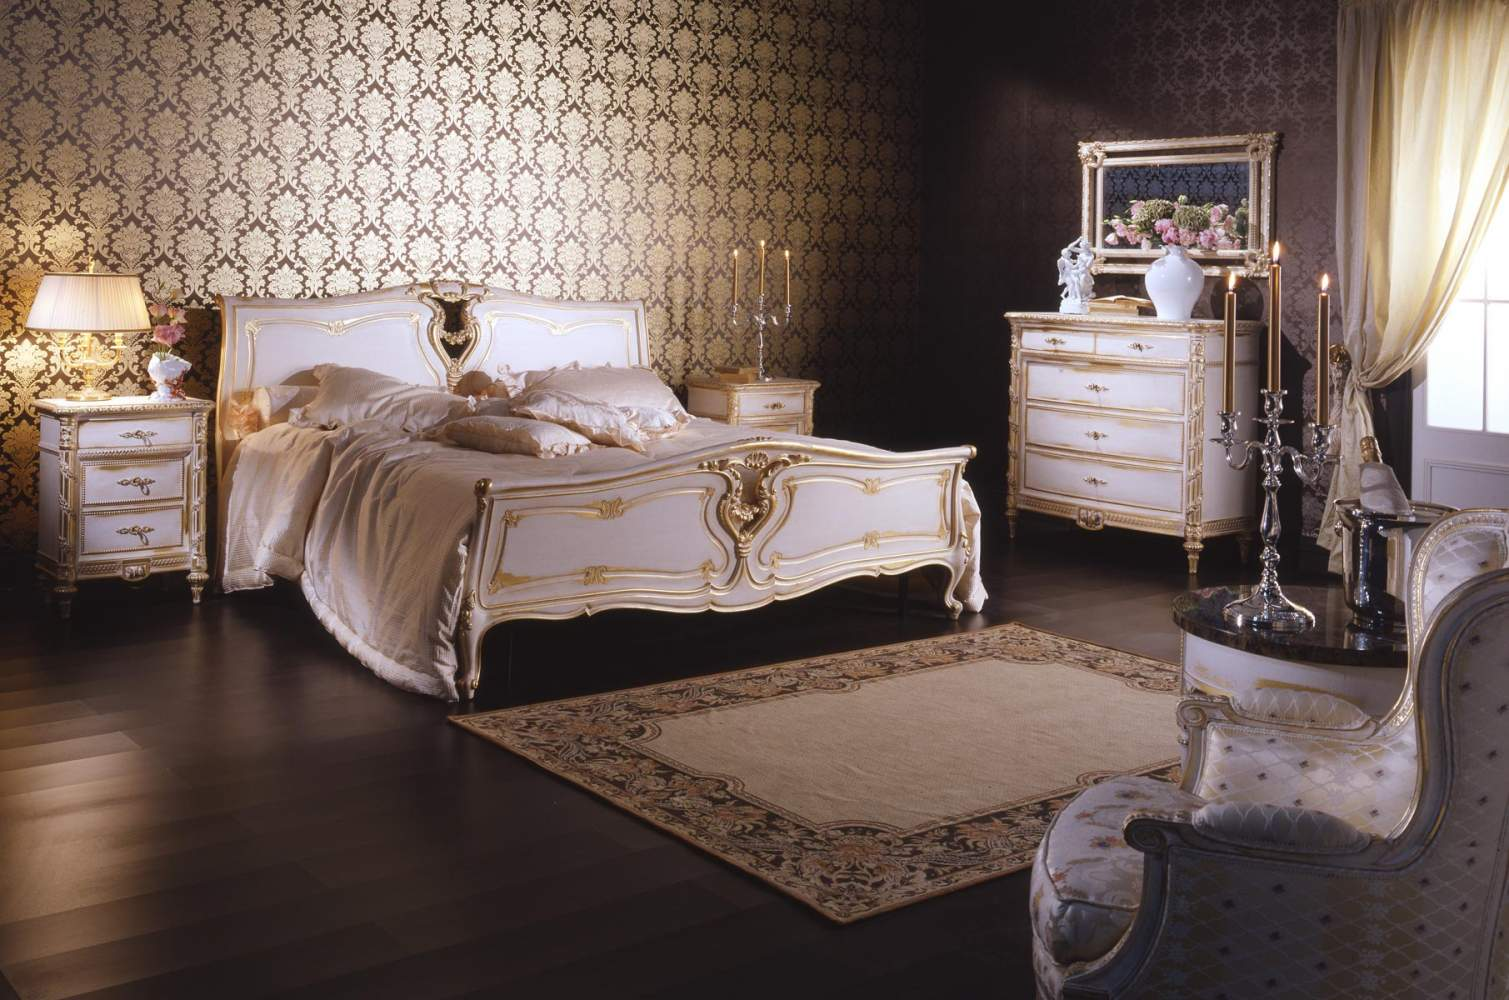 Classic Louis XVI bedroom made of bed, chest of drawers and night tables, all in carved wood and finishing in white over gold